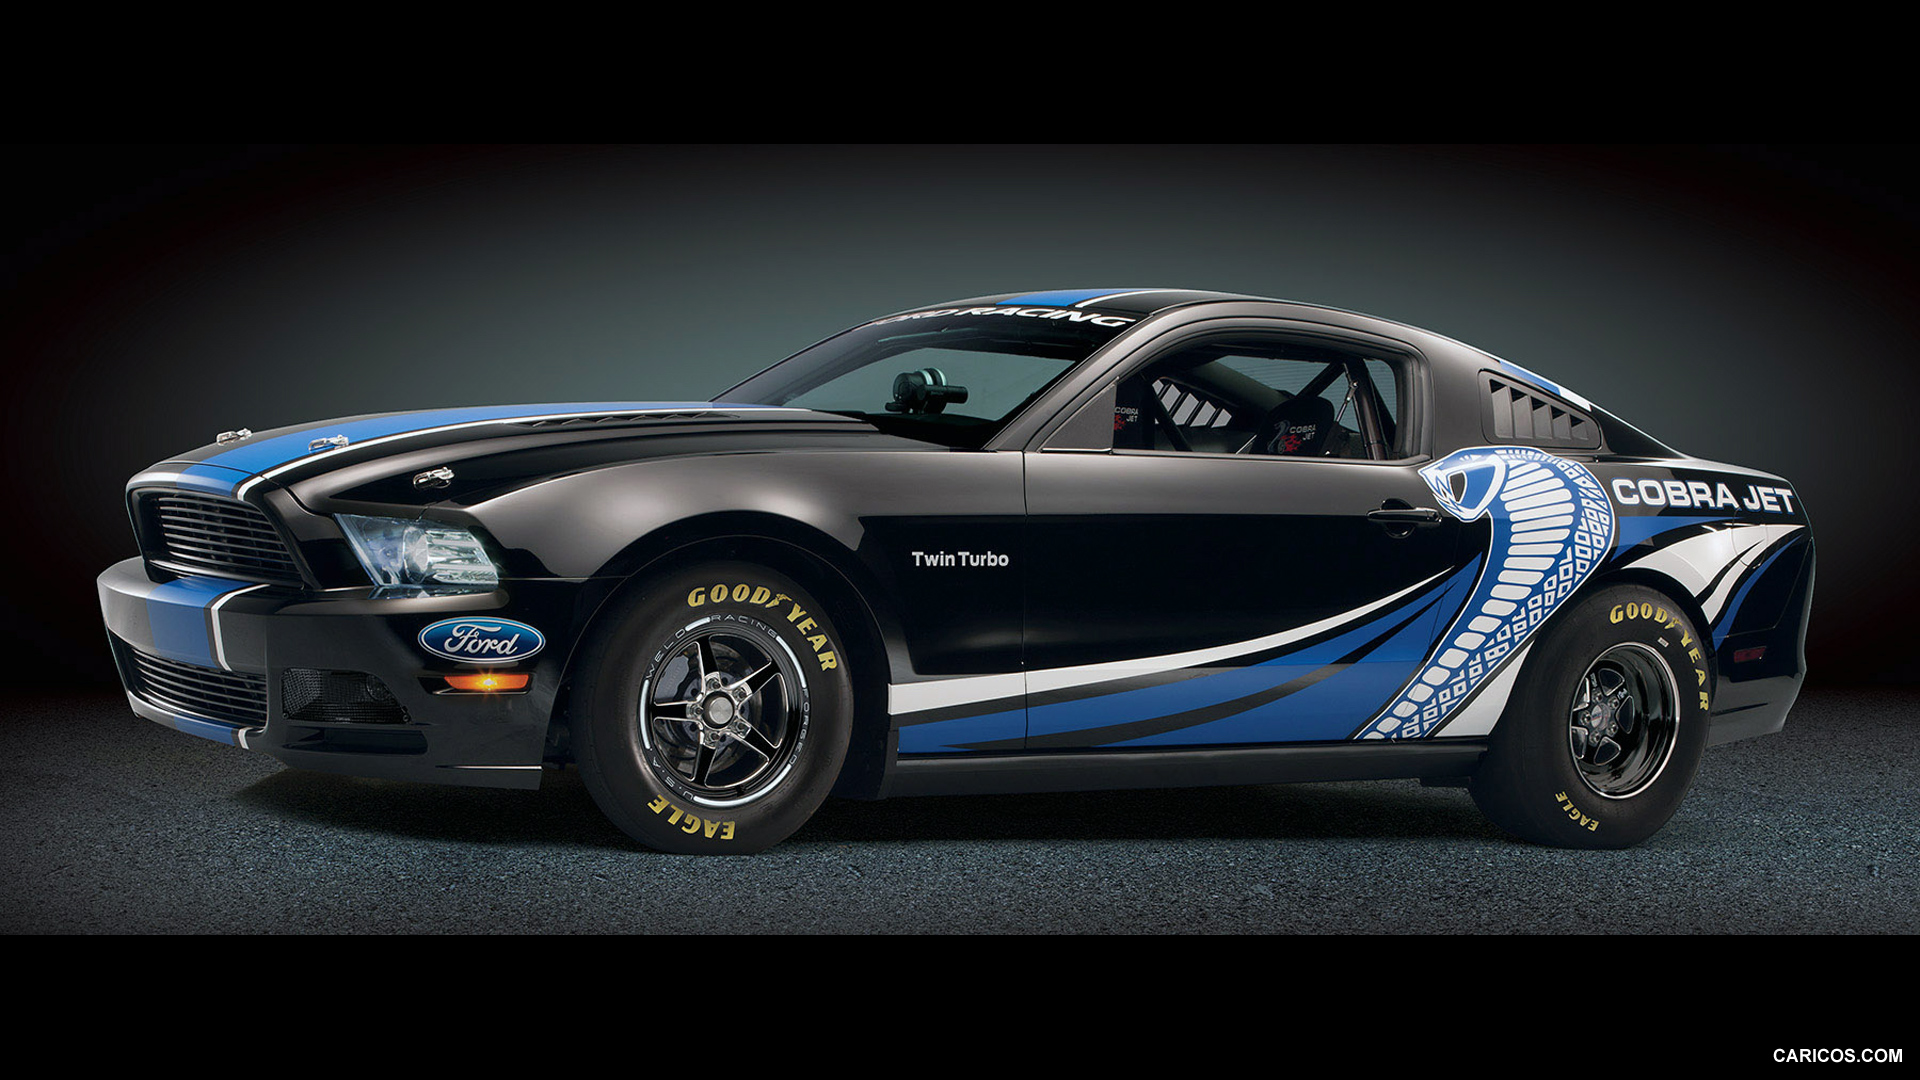 2012 Ford Mustang Cobra Jet Twin Turbo Concept Black   Side HD 1920x1080